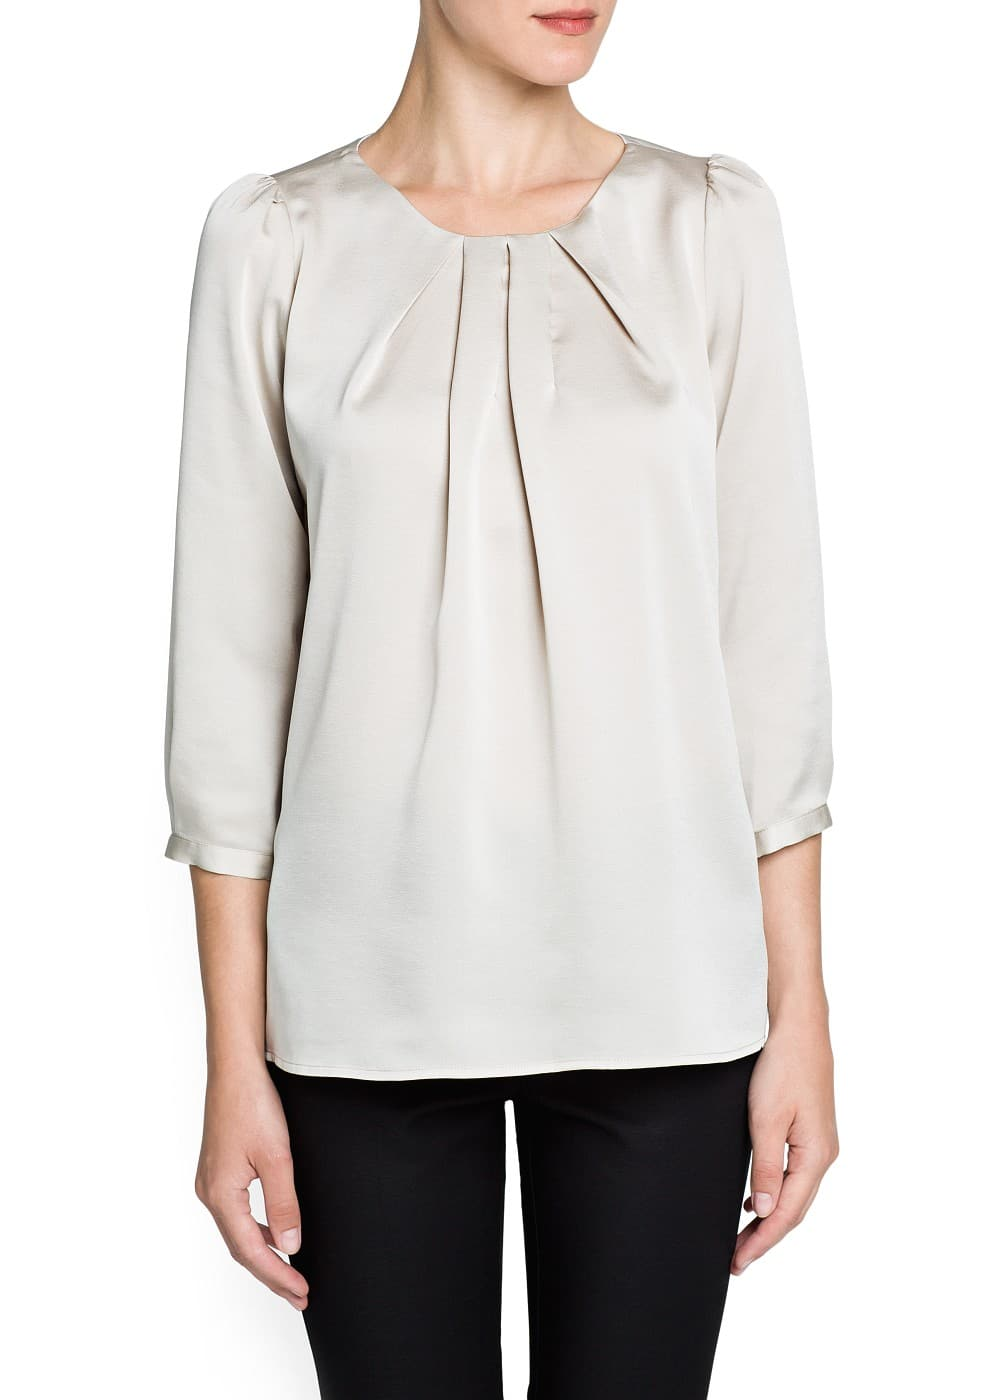 Satin-finish pleated blouse